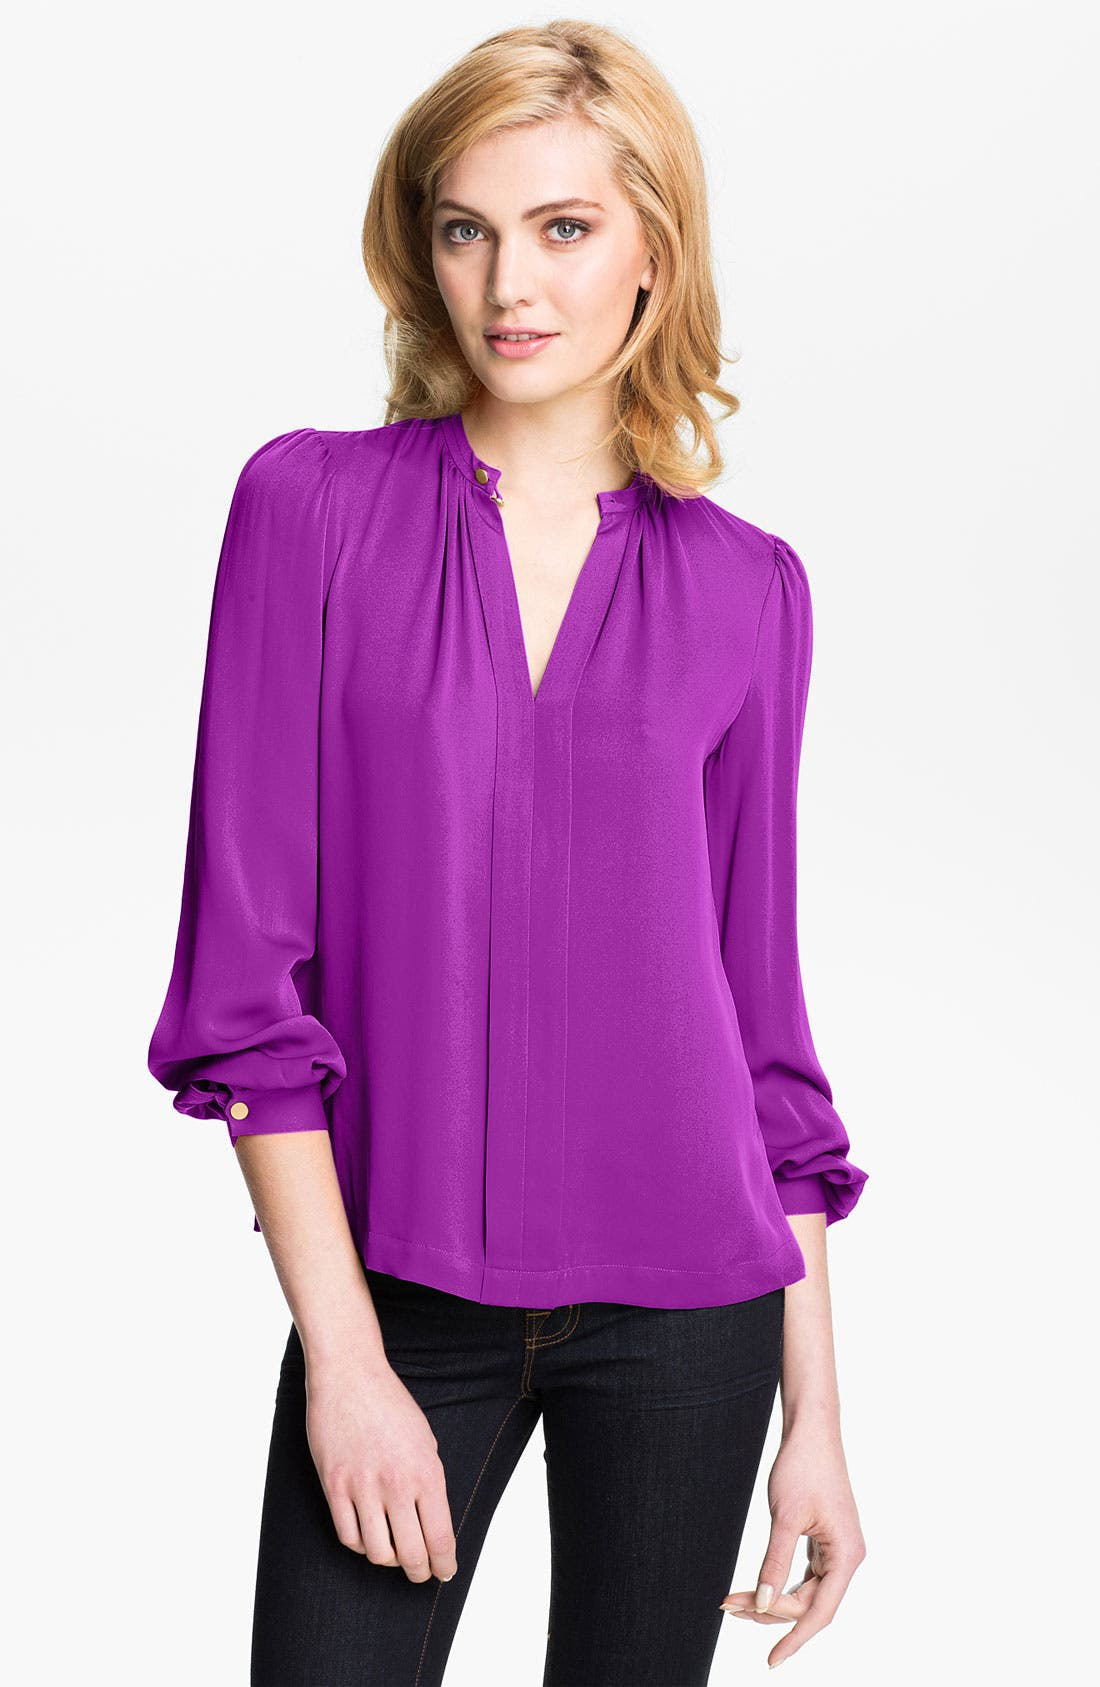 Main Image - Diane von Furstenberg 'Billow' Silk Blouse